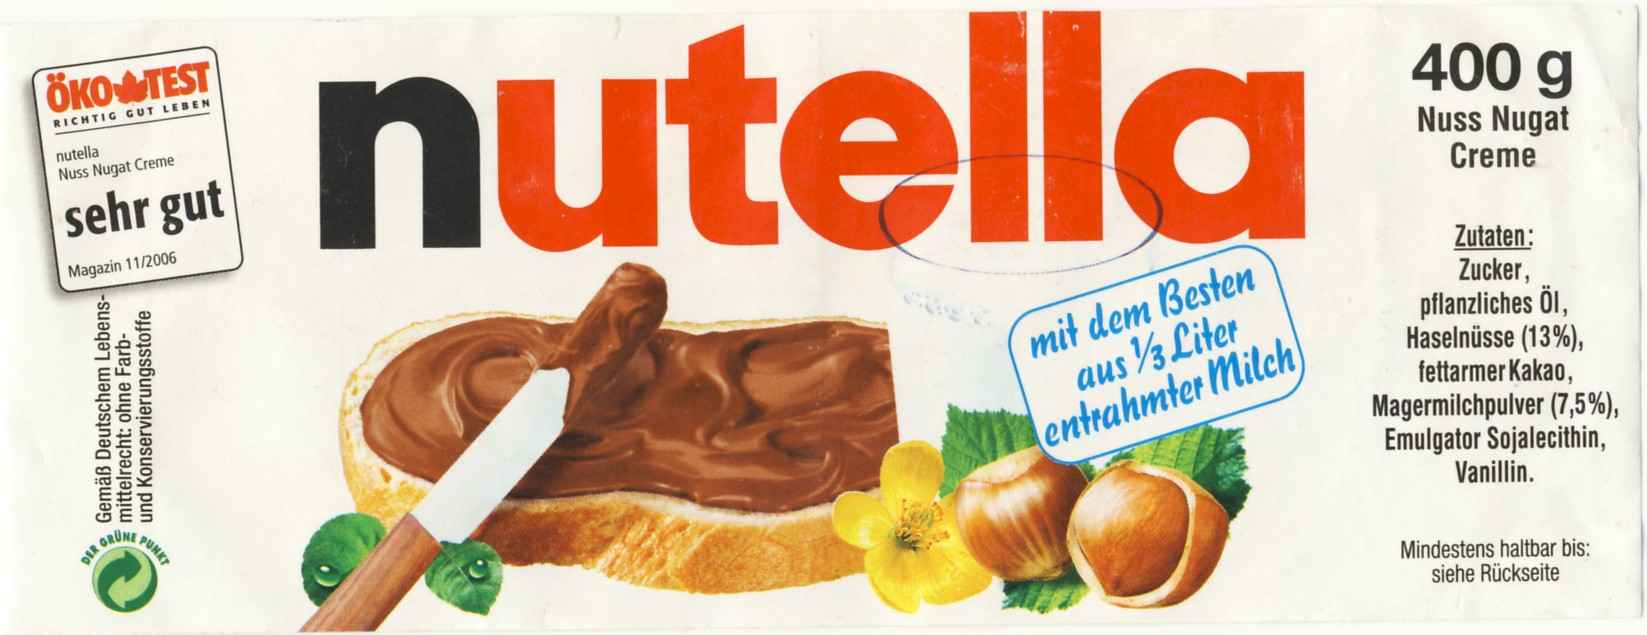 Nutella and new EU food label requirements - Page 6 - Miscellaneous ...